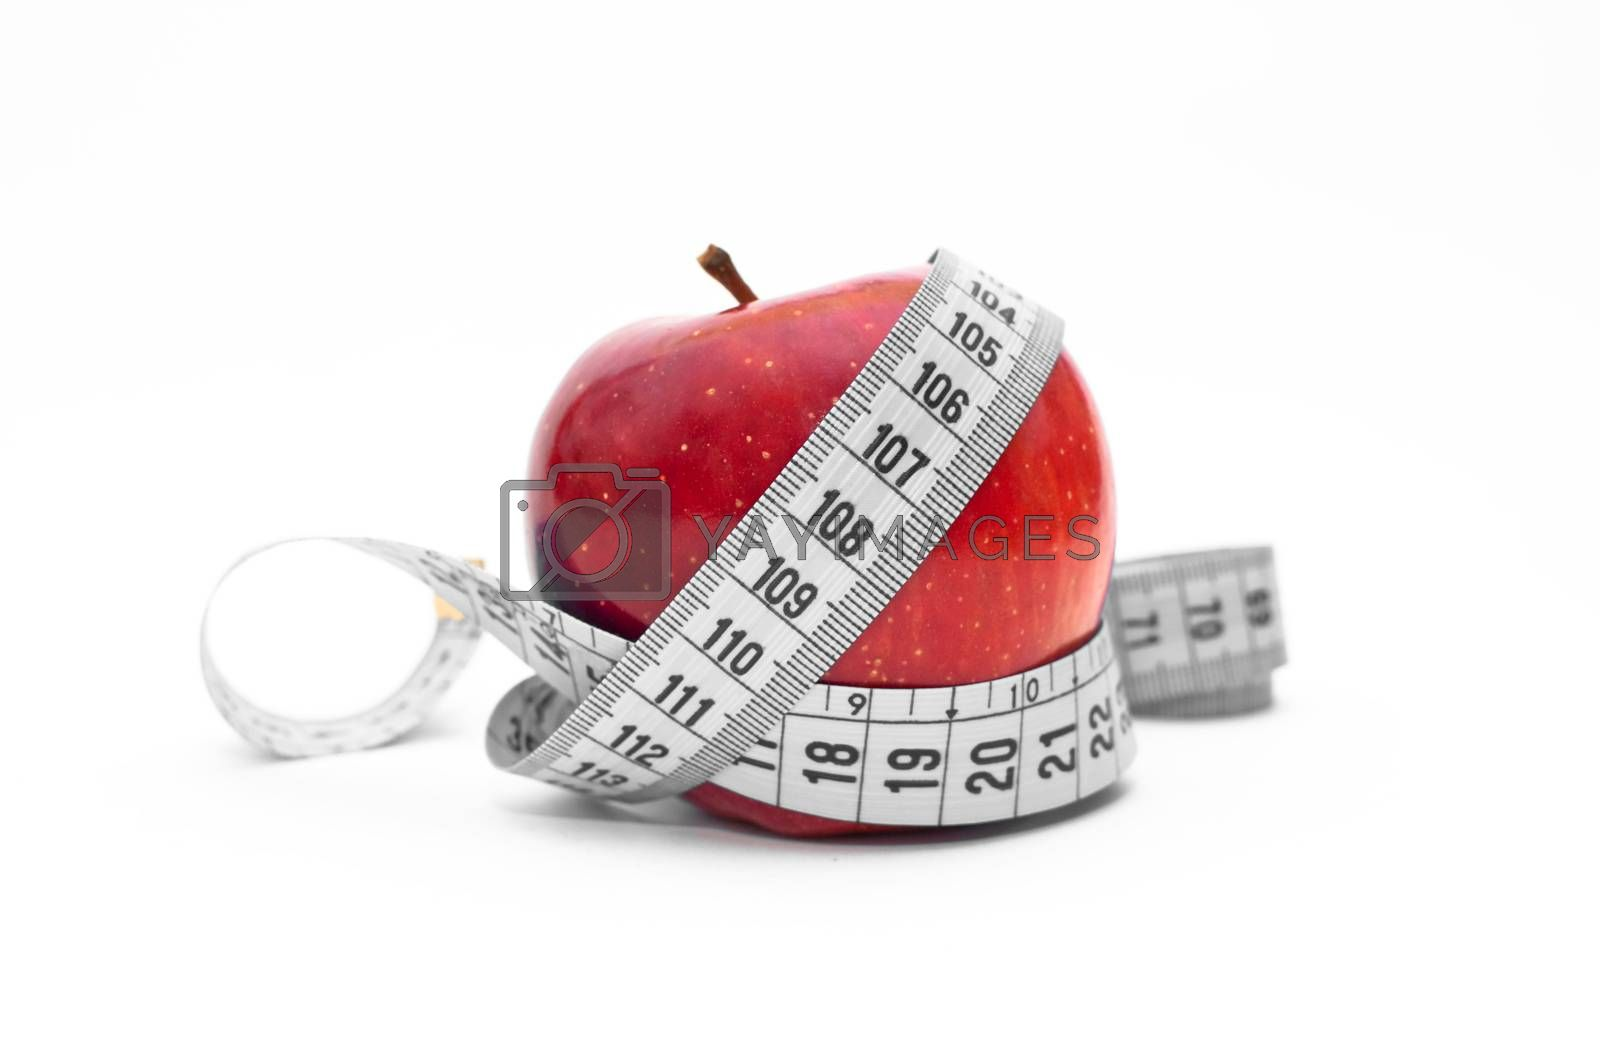 Organic apple and a tape measure over a white backround